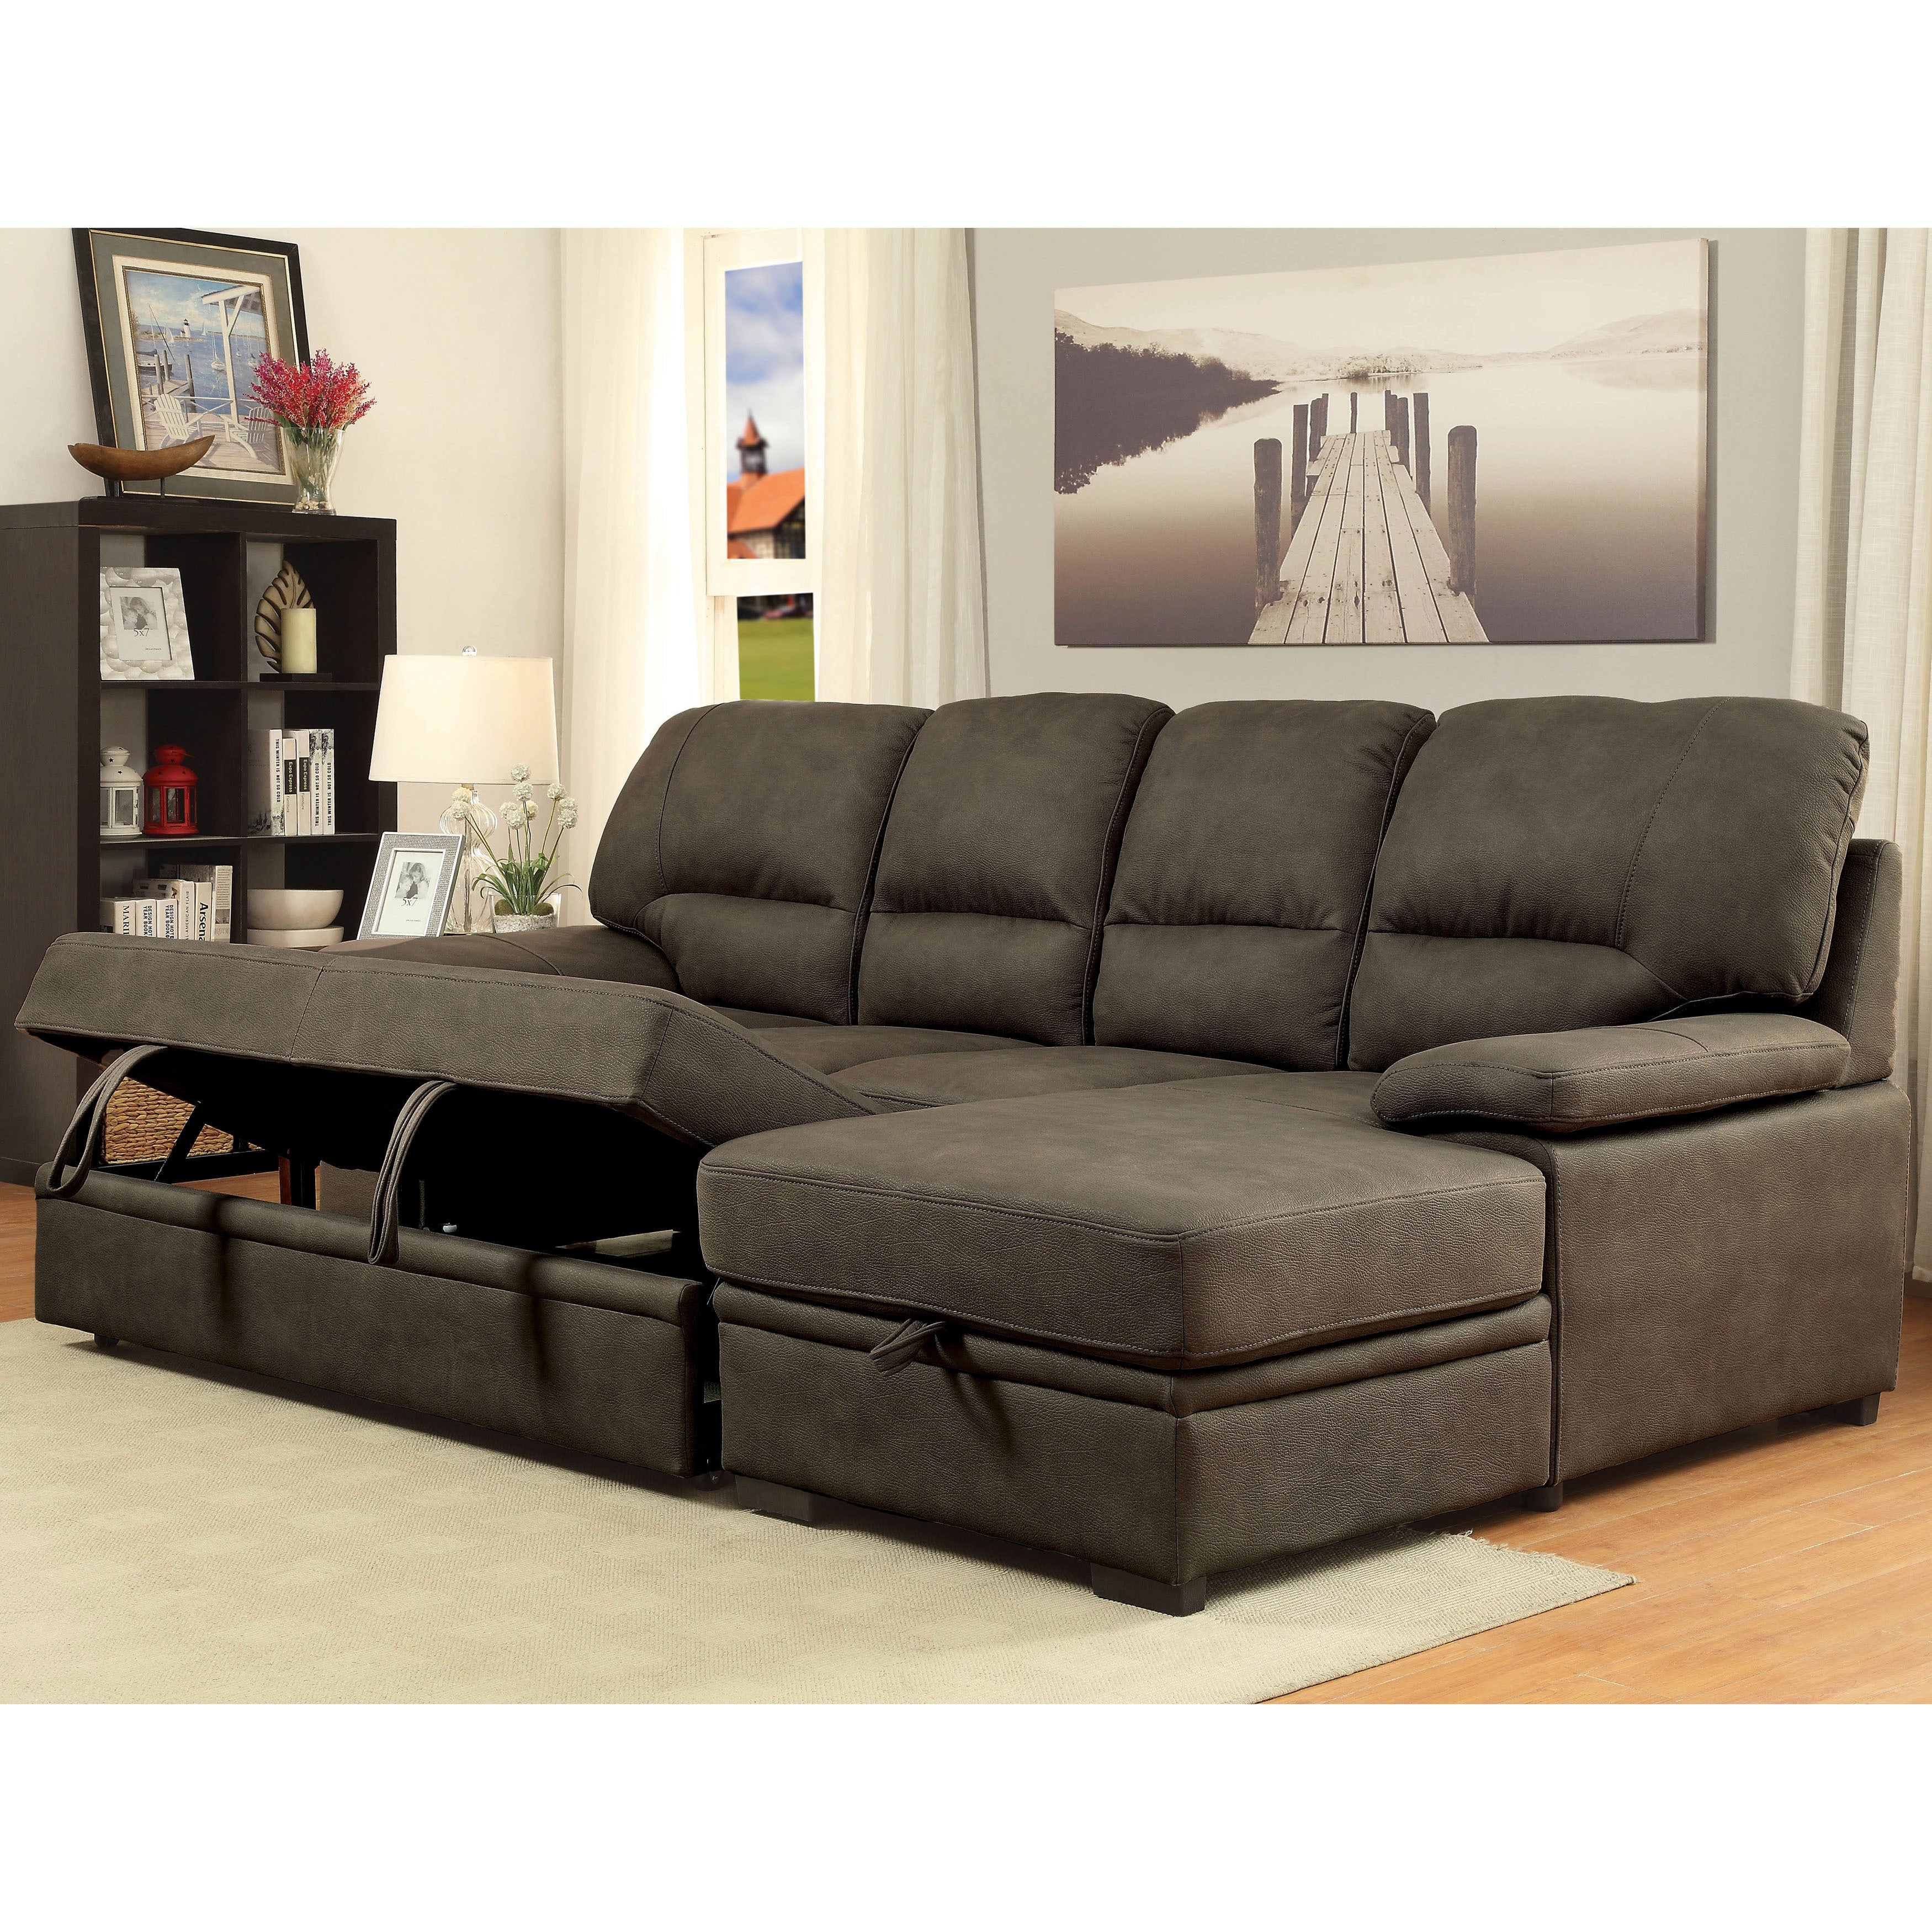 Shop Delton Contemporary Nubuck Leather Sleeper Sectional by FOA ...